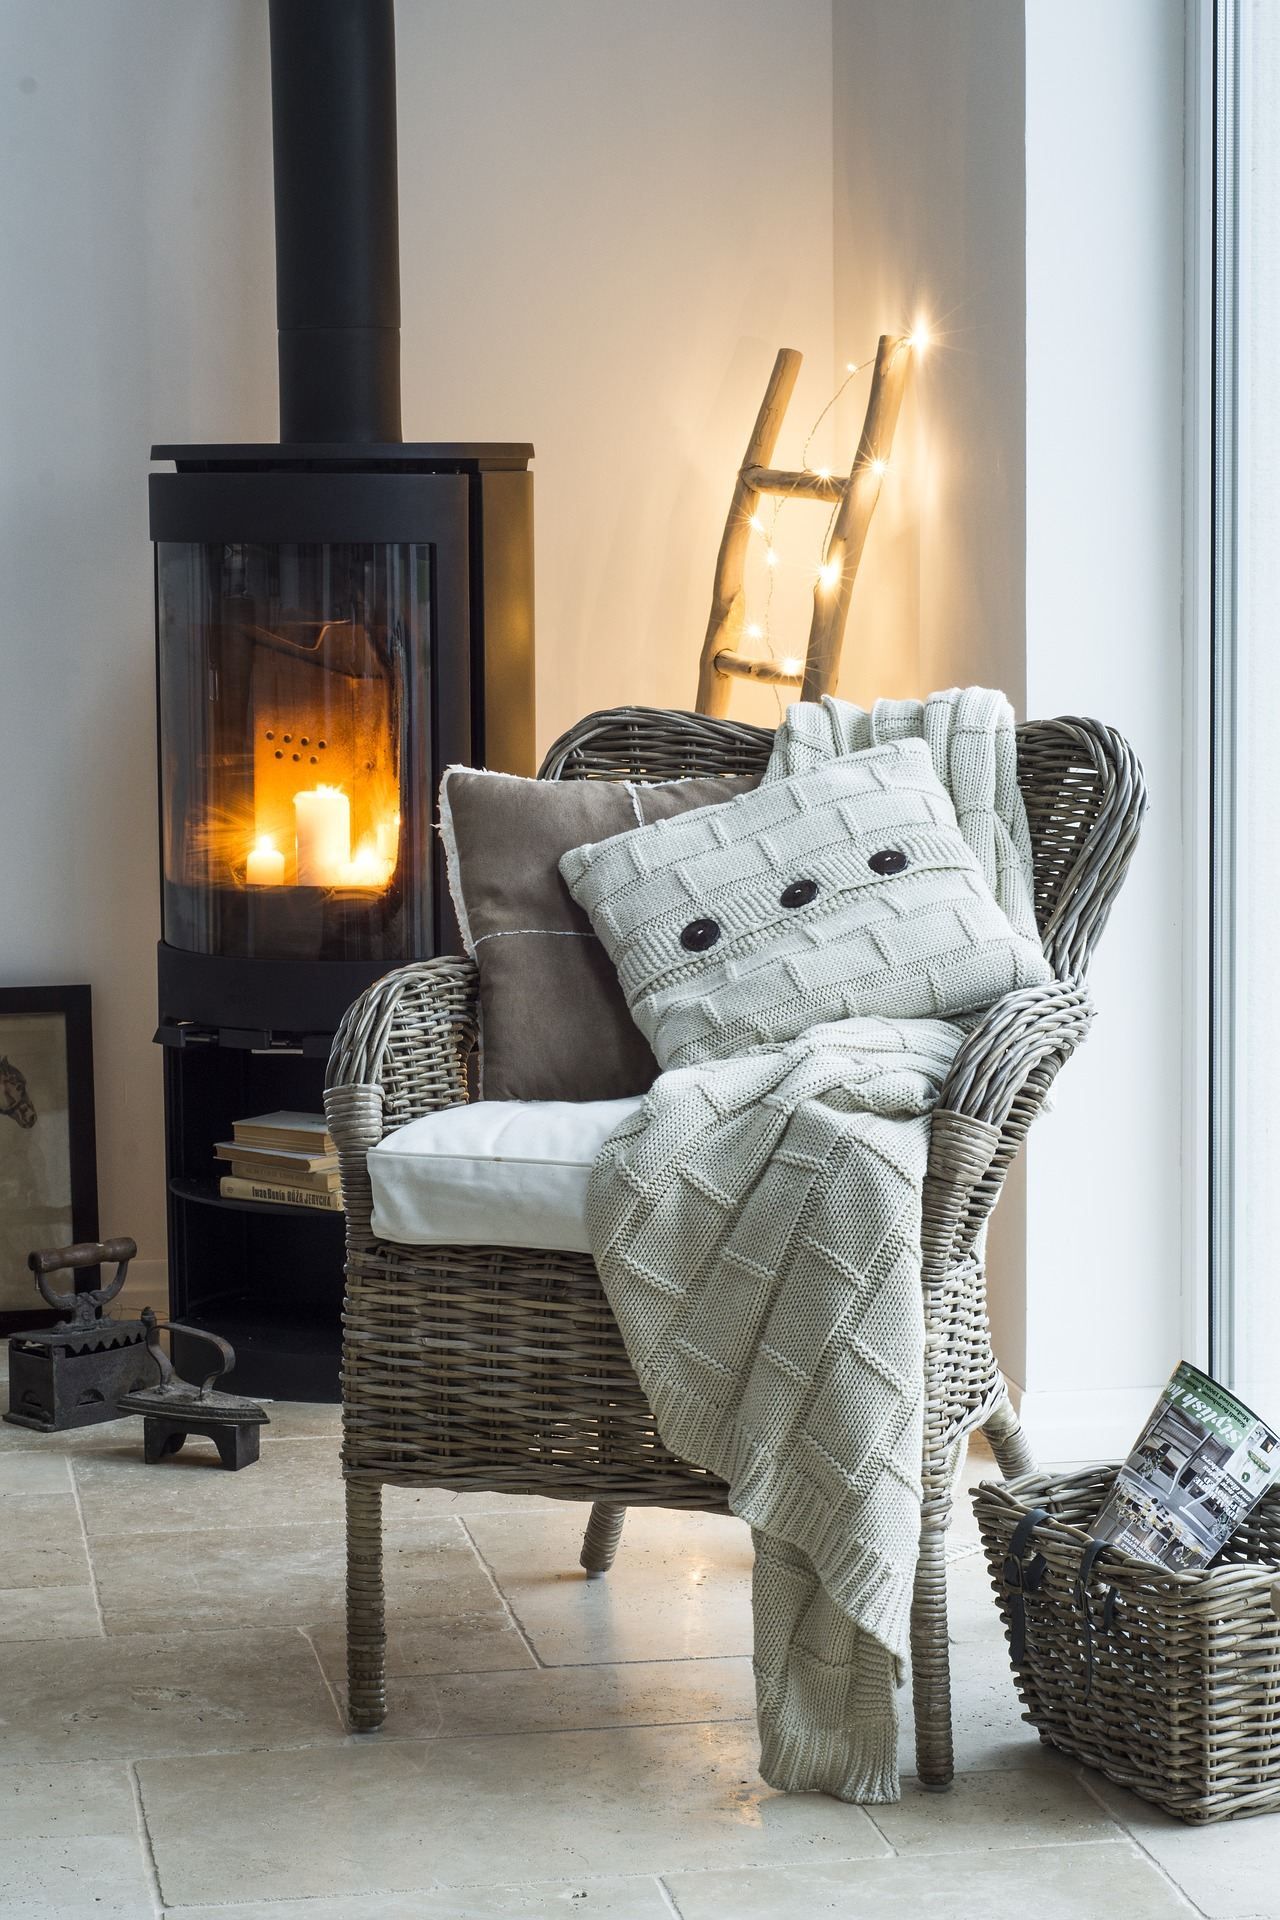 4 Types Of Central Heating You Can Implement In Your Home